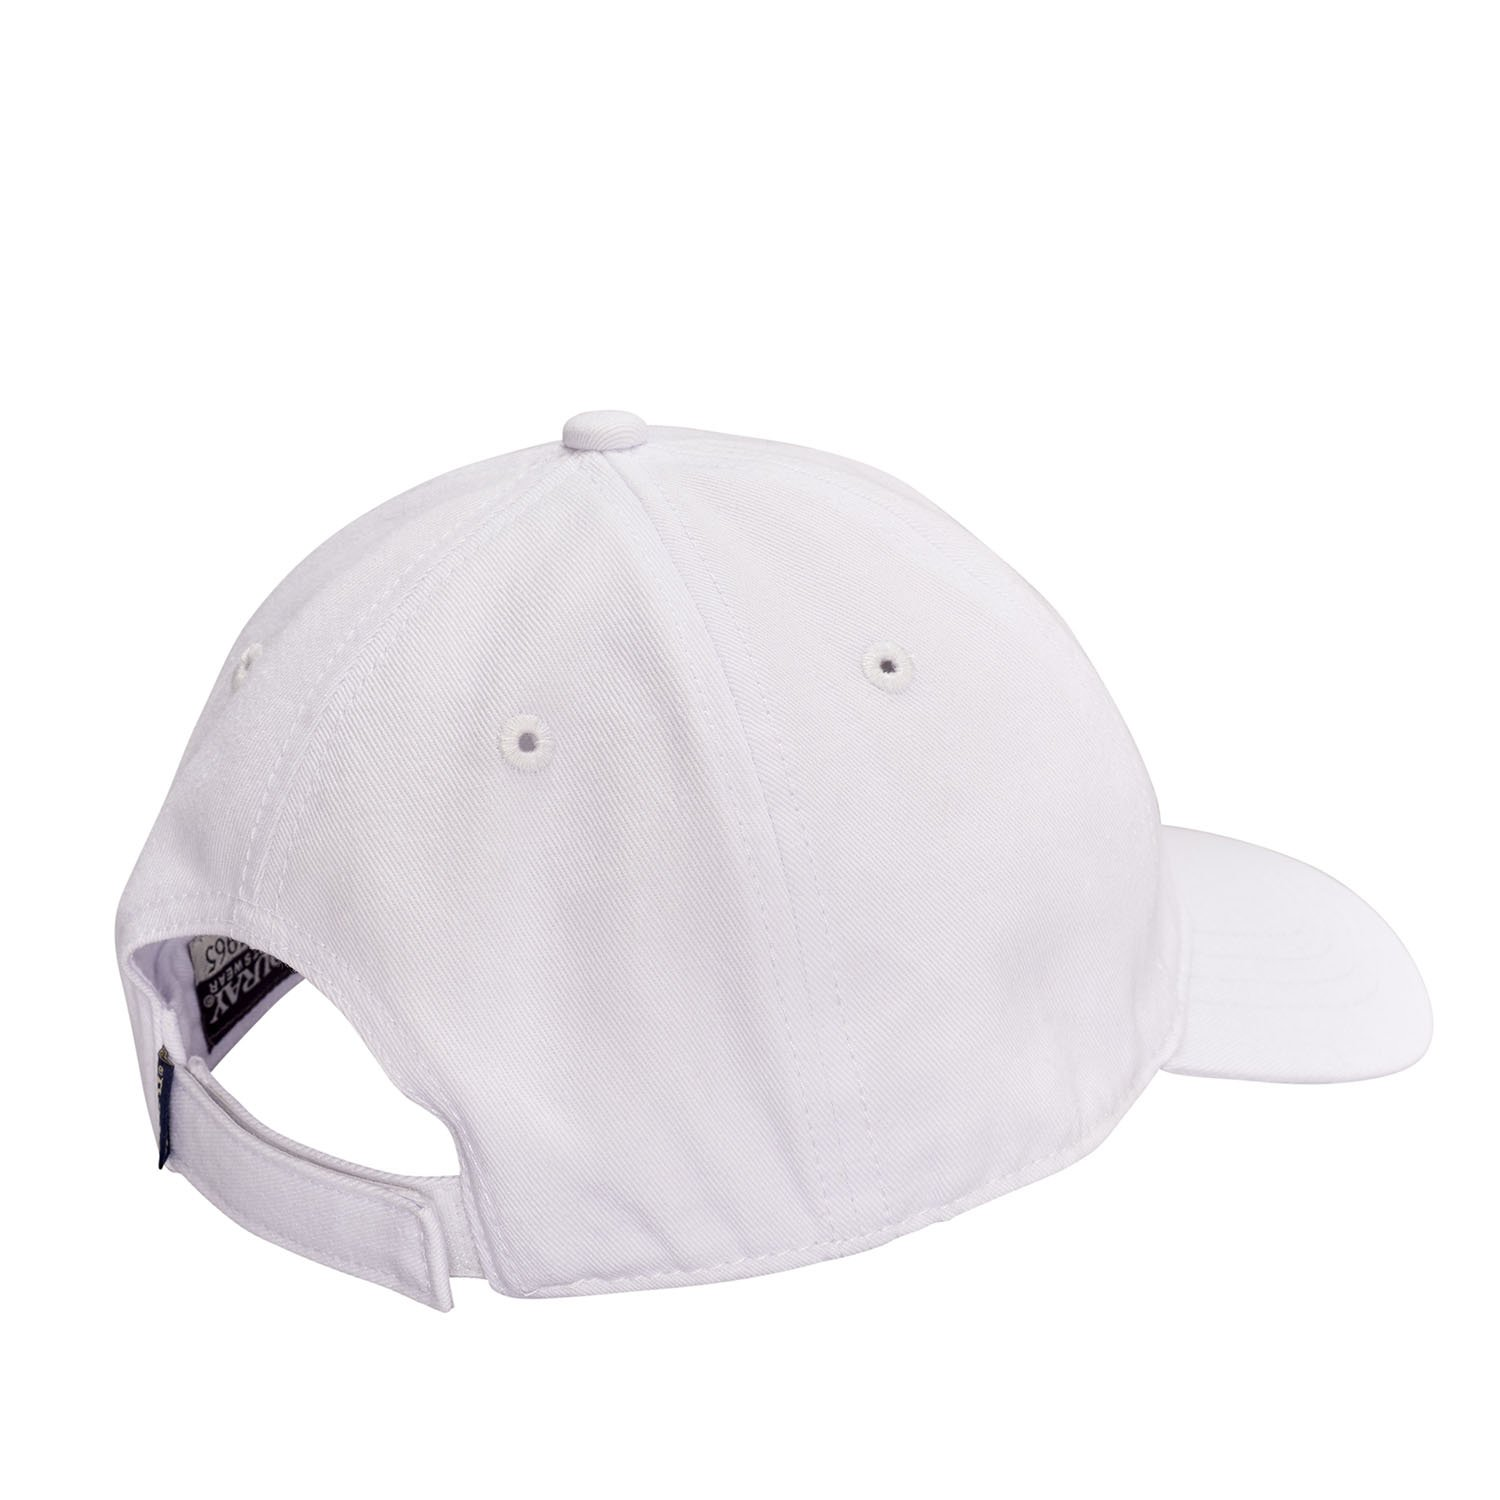 quality design 532f1 93406 Amazon.com   Ouray Sportswear NCAA Epic Washed Twill Cap   Sports   Outdoors